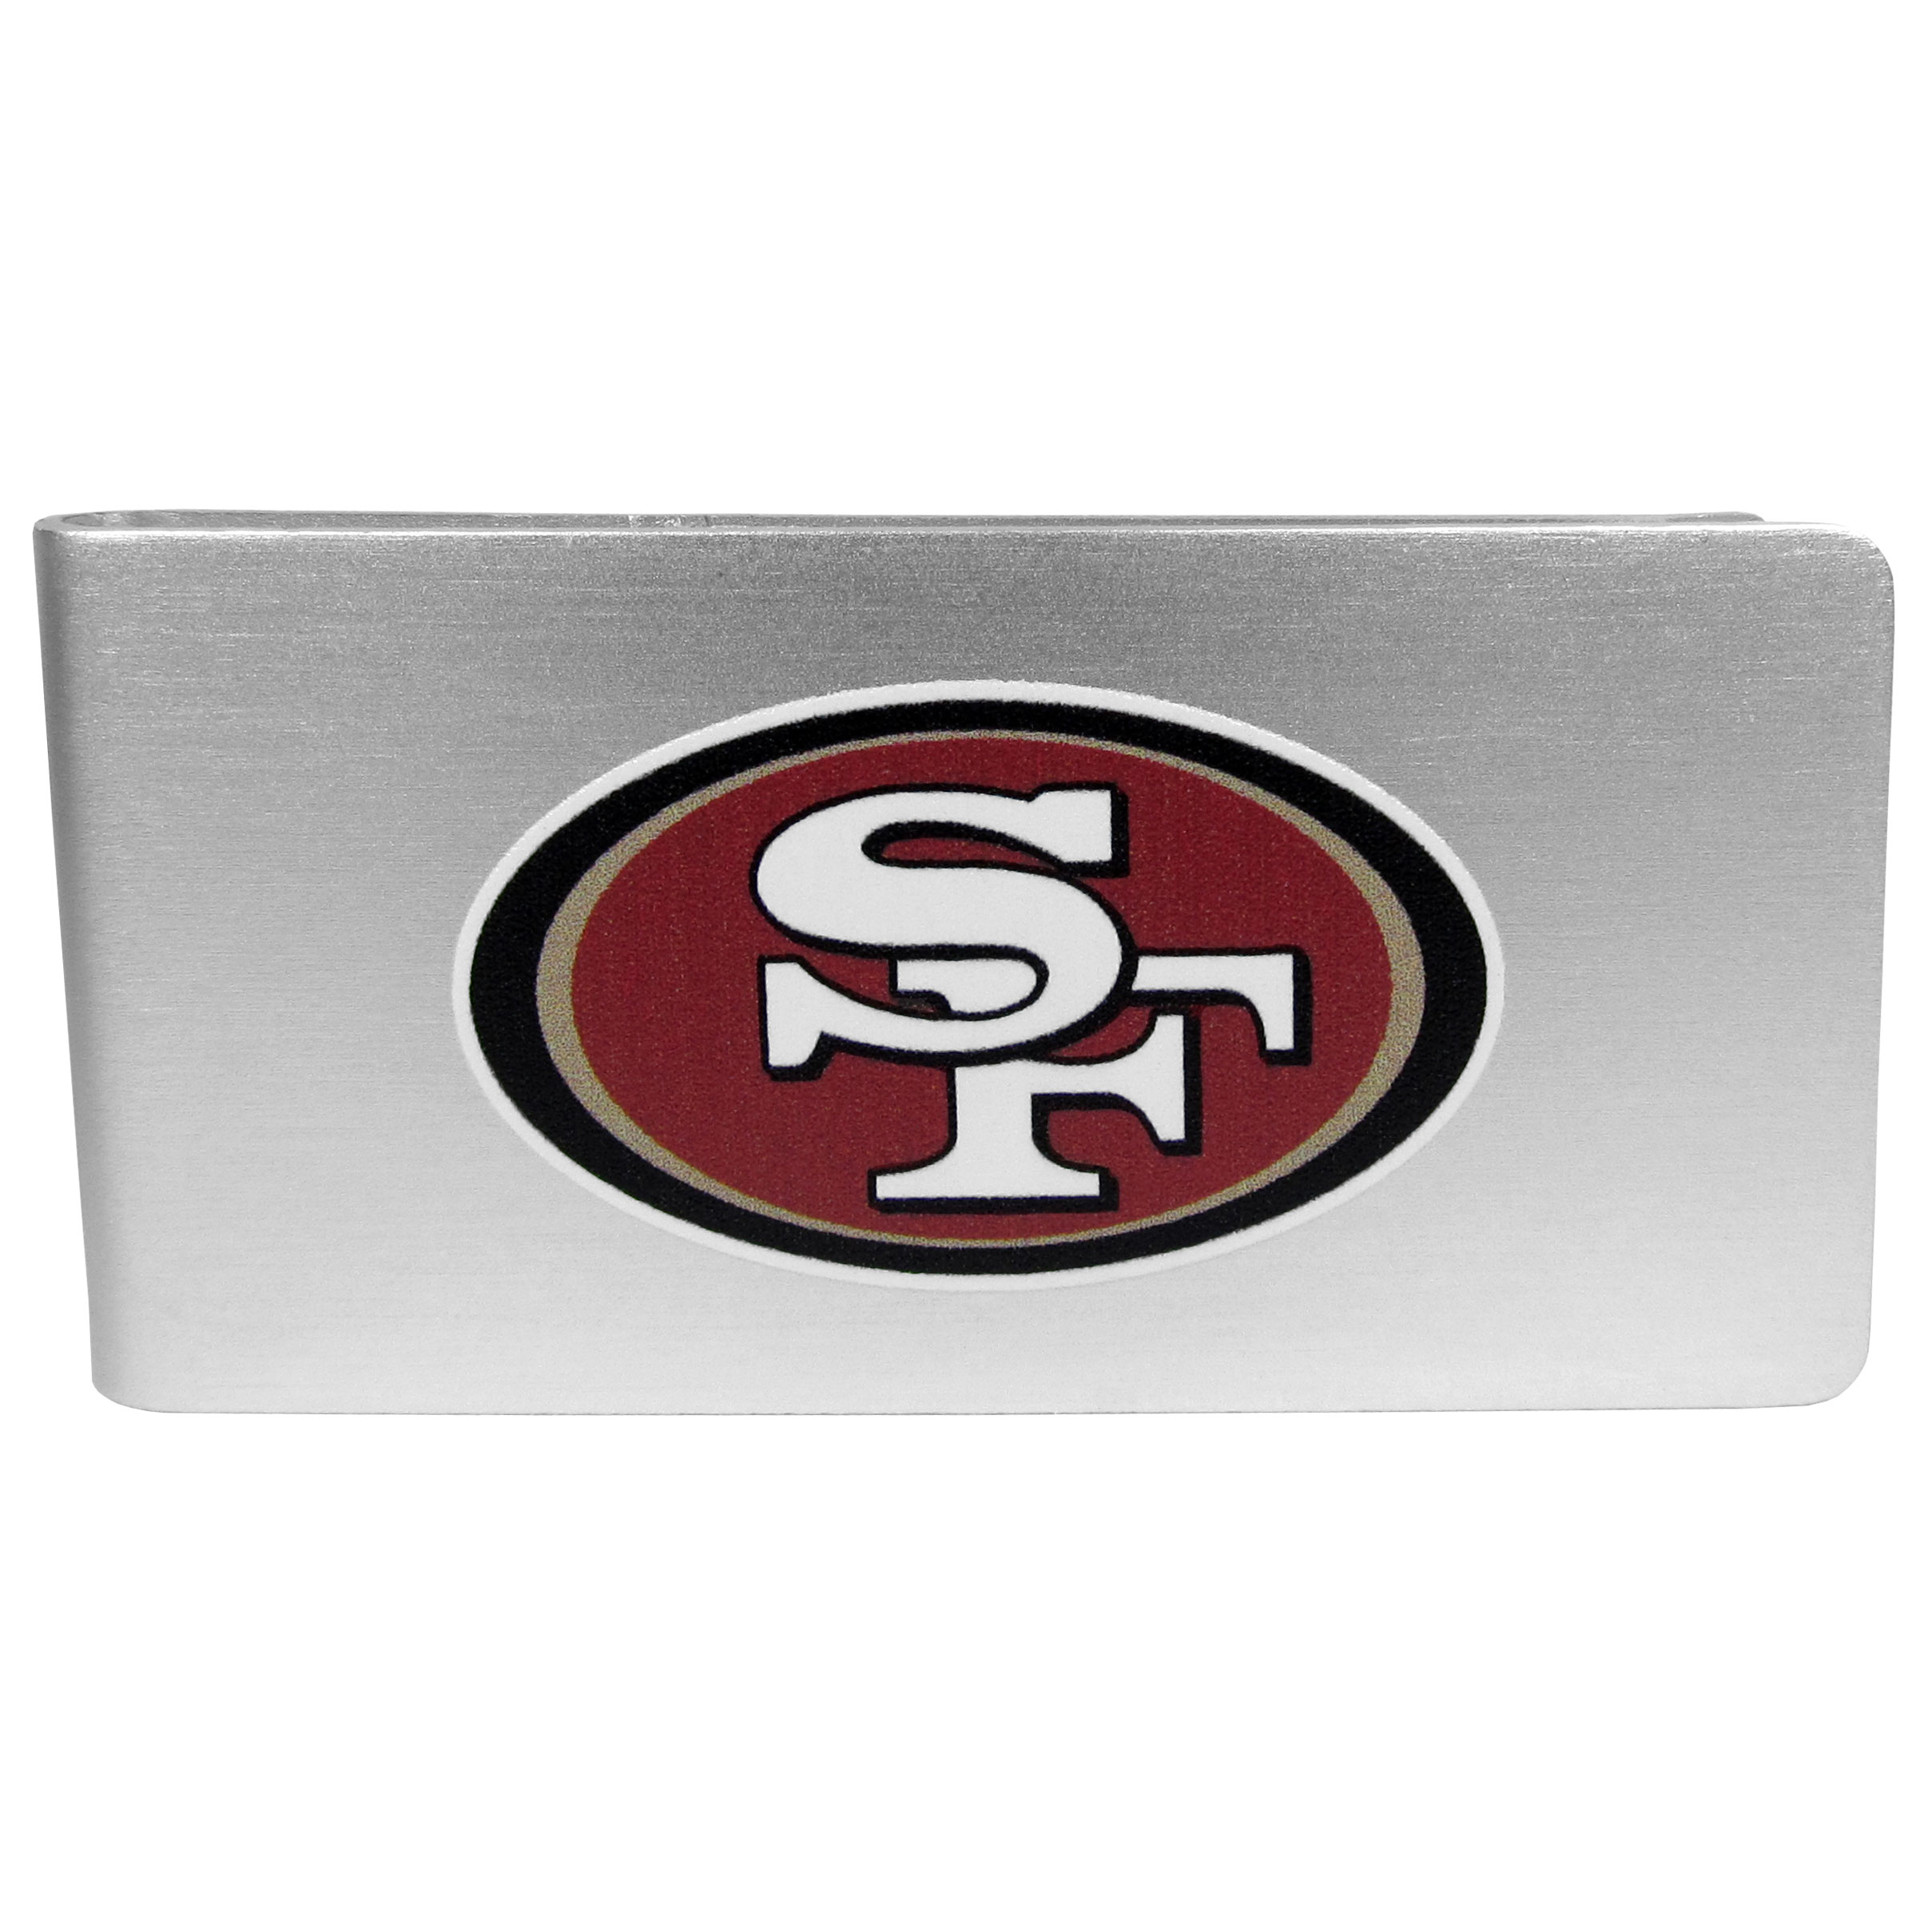 San Francisco 49ers Logo Money Clip - Our brushed metal money clip has classic style and functionality. The attractive clip features the San Francisco 49ers logo expertly printed on front.